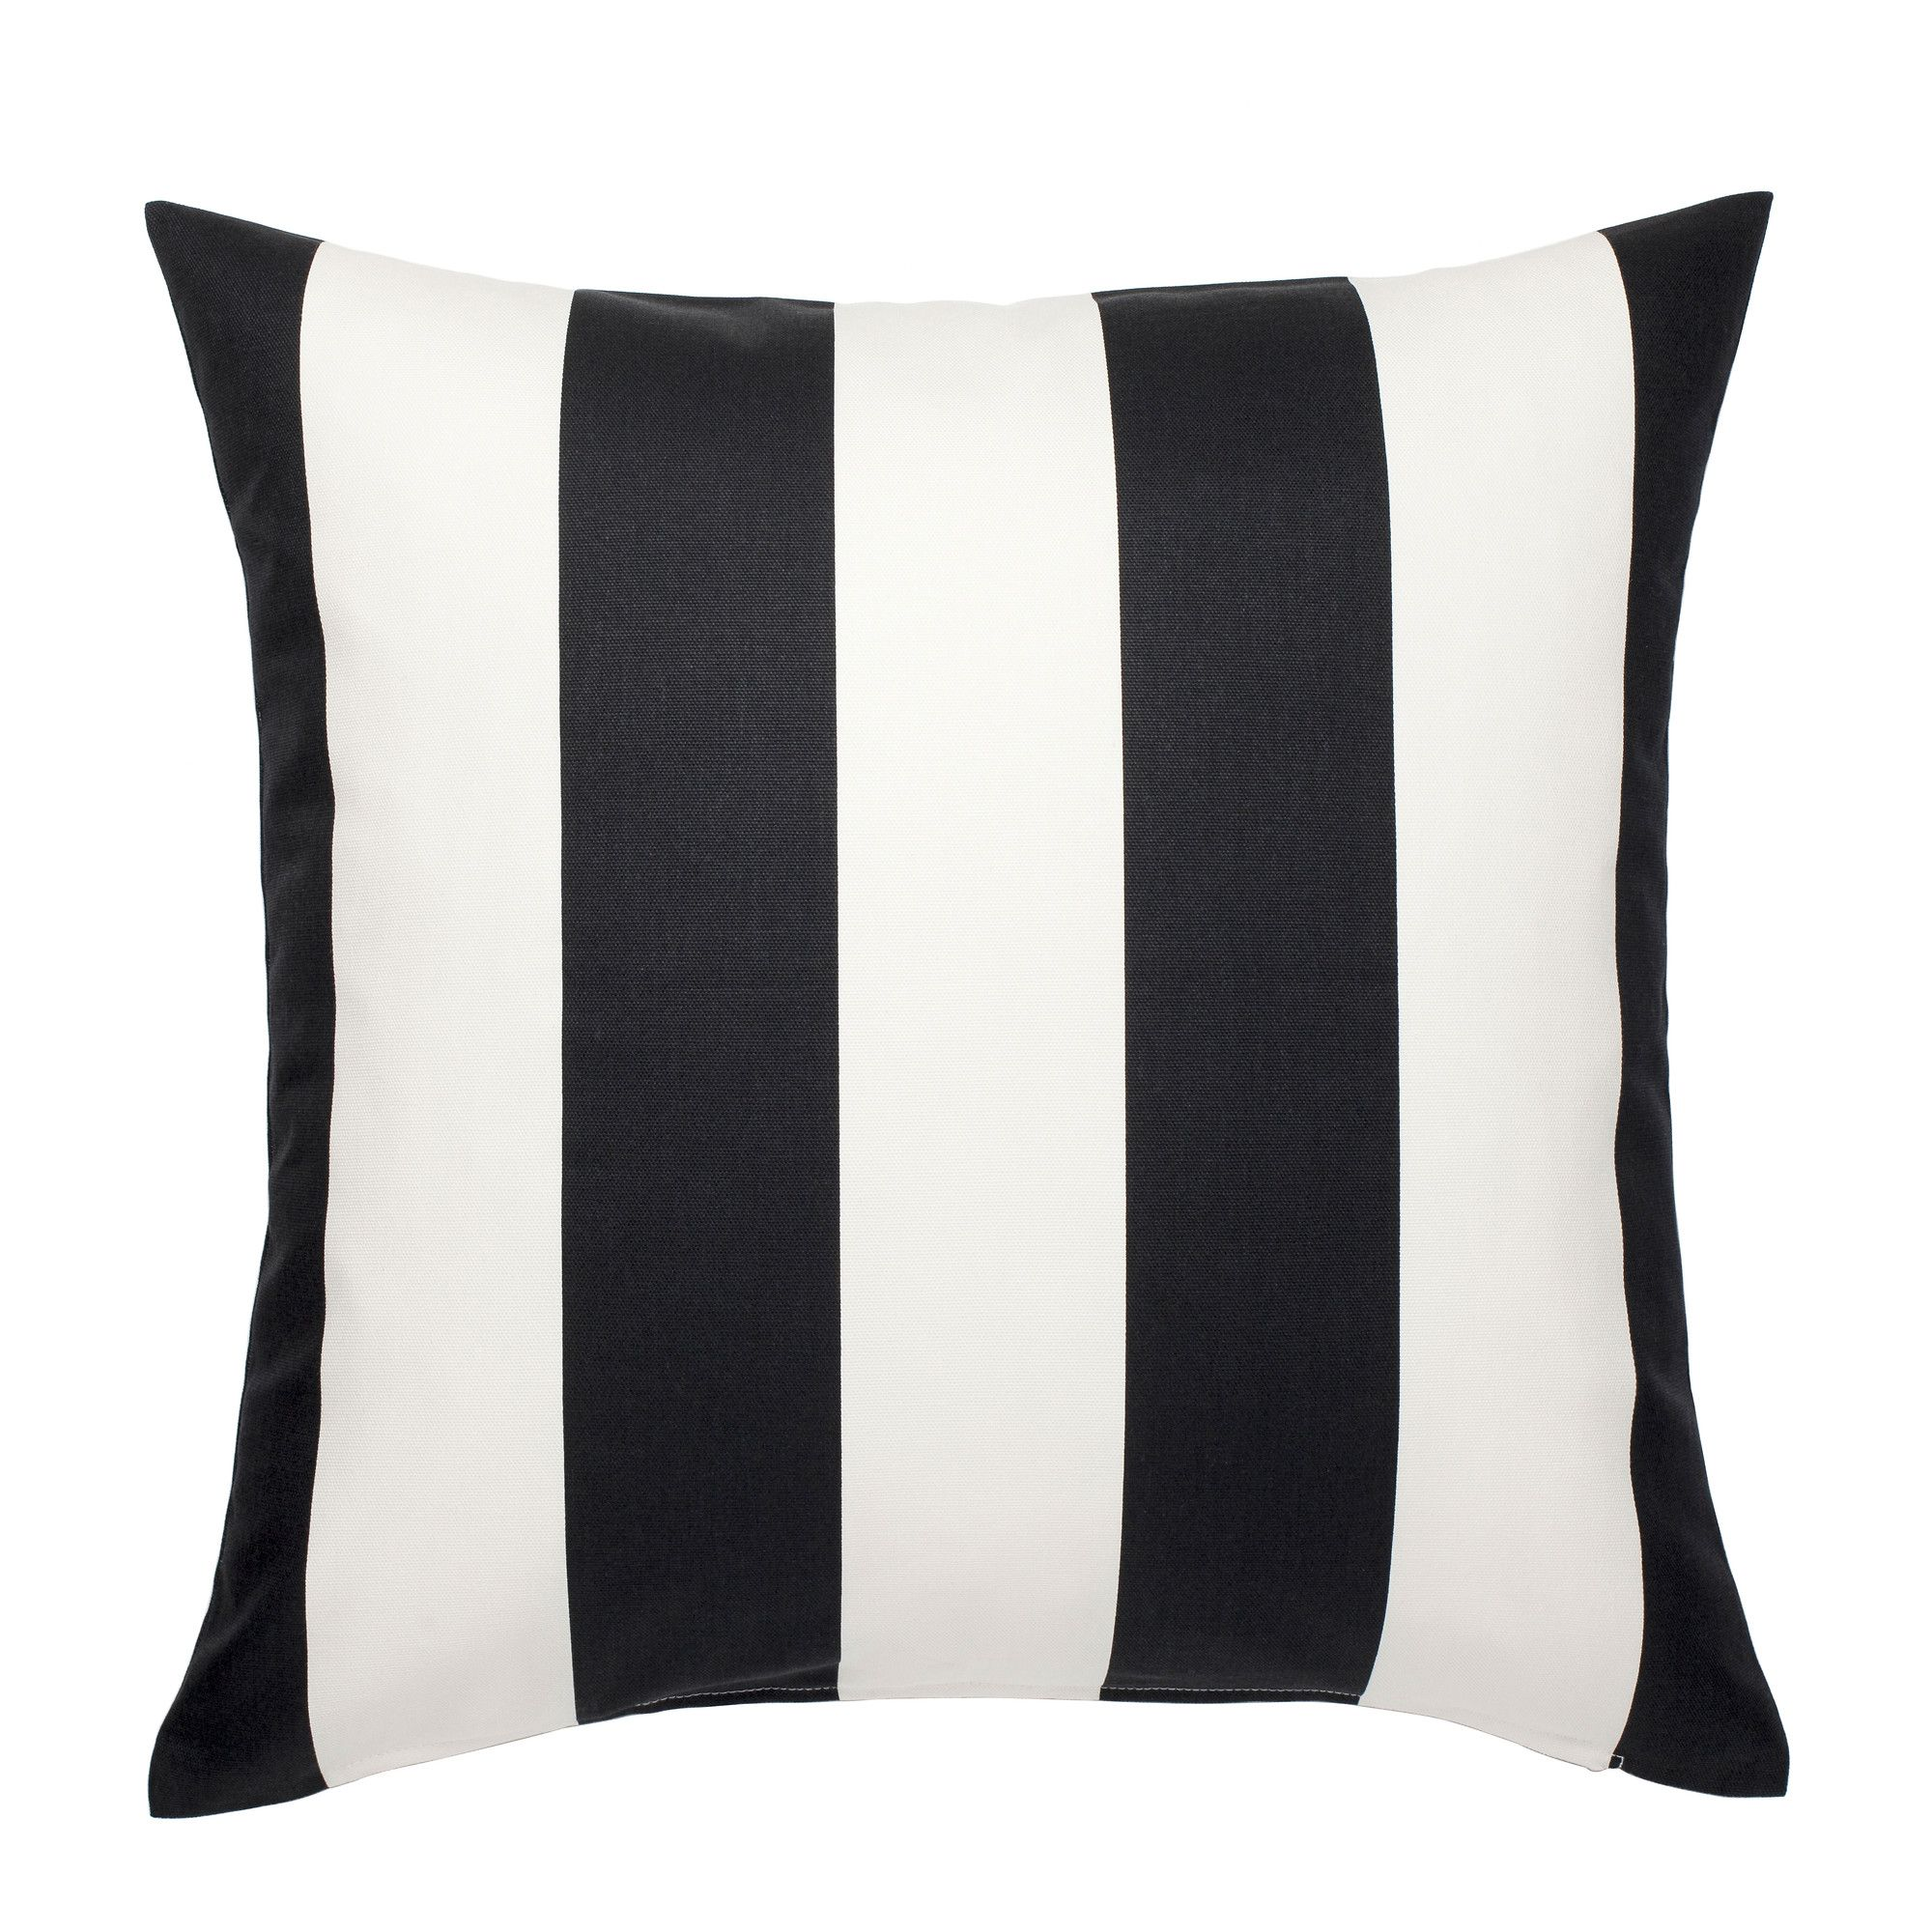 US Furniture and Home Furnishings Cute cushions